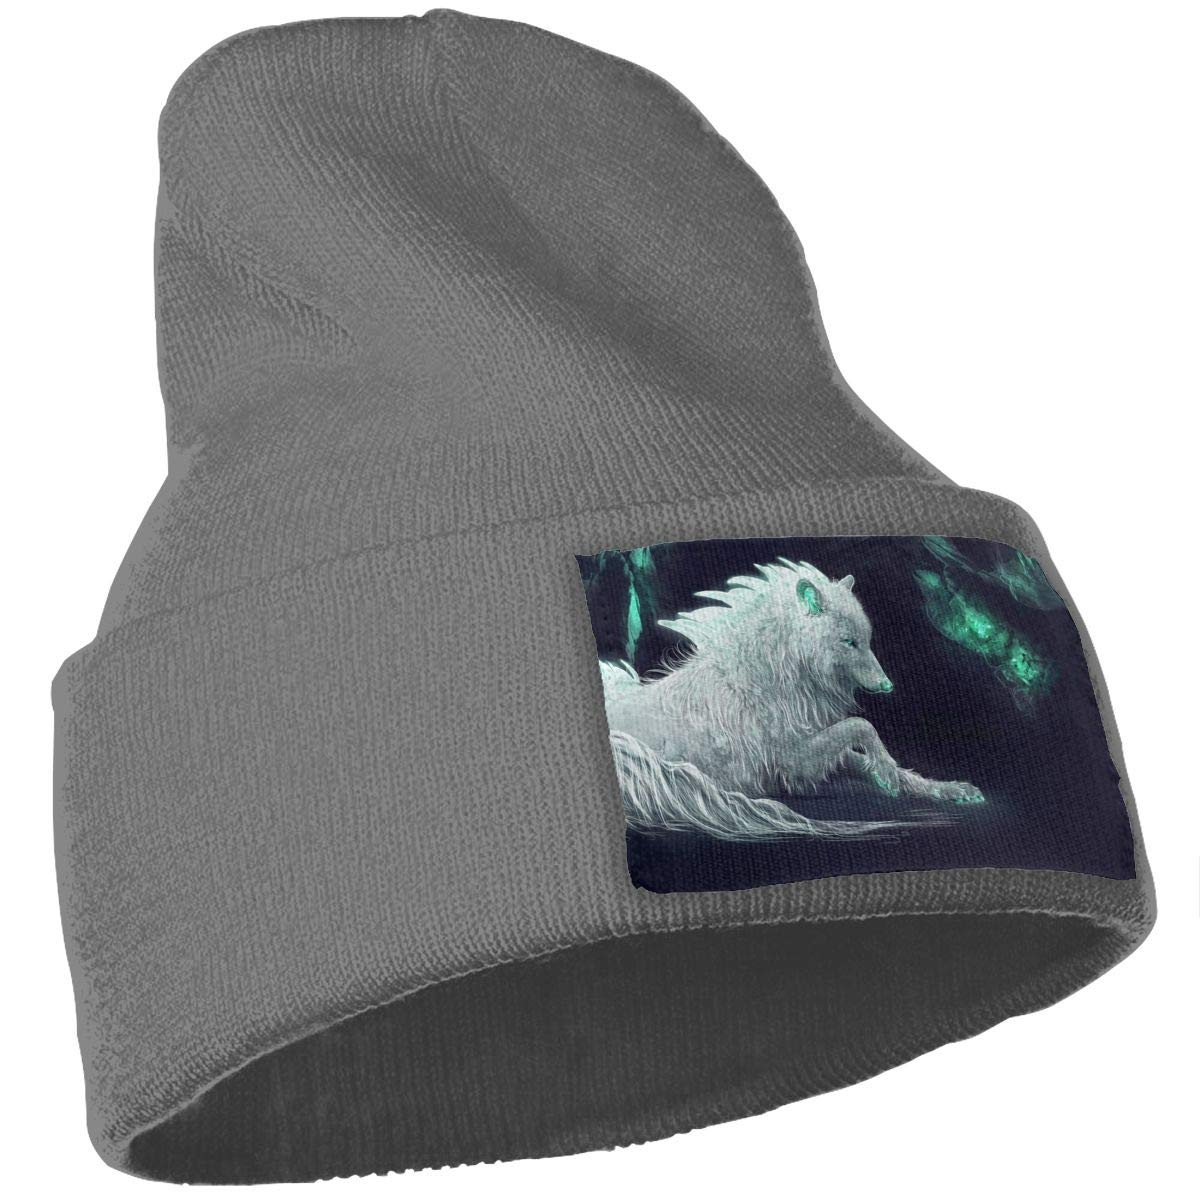 White Wolf Hat for Men and Women Winter Warm Hats Knit Slouchy Thick Skull Cap Black